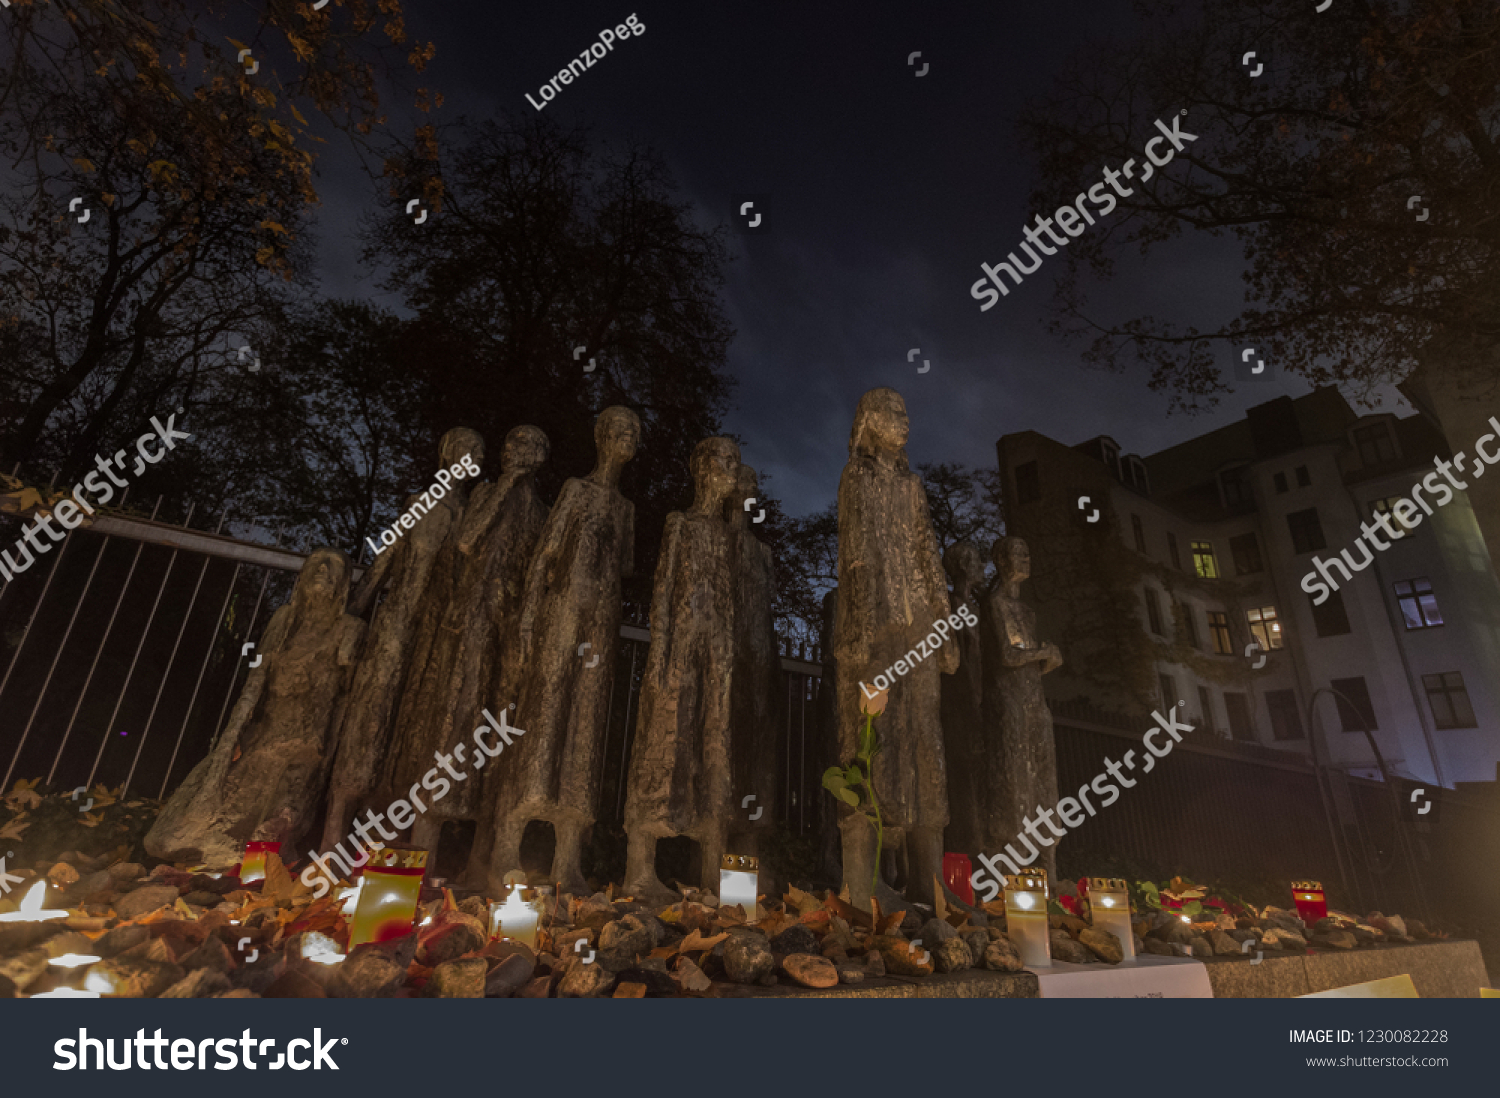 Jewish Cemetery At Grosse Hamburger Strasse In Berlin Germany Berlin Germany 9th November 2018 View Stock Photo Edit Now